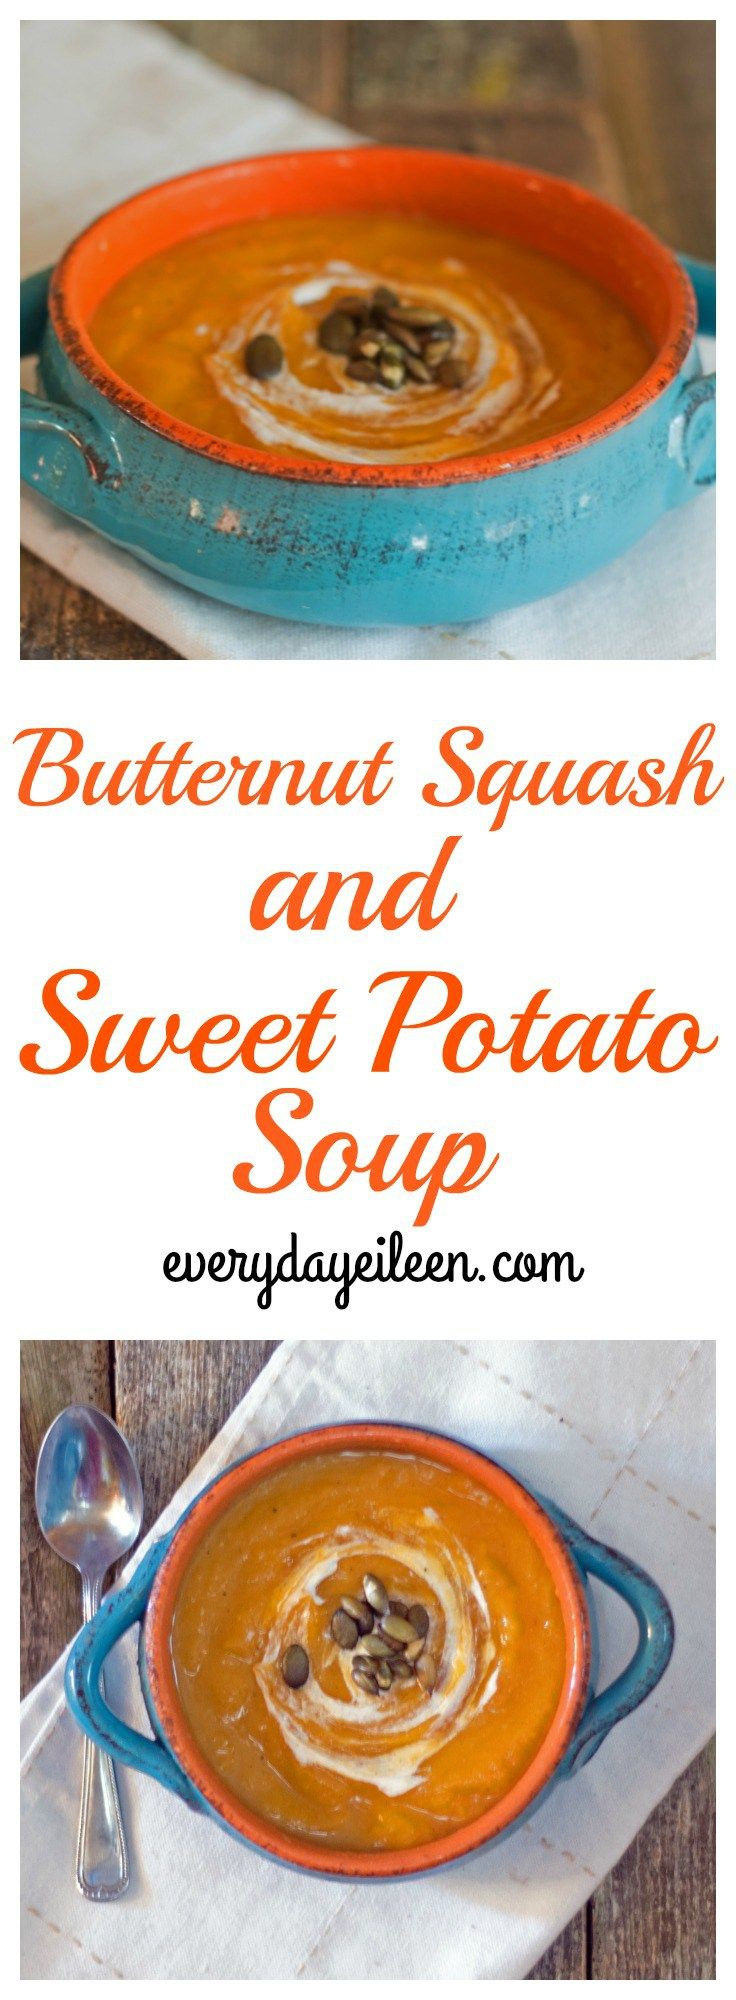 Butternut squash and sweet potato soup is a low-fat, low-calorie soup.  A soup filled with flavor and antioxidants. Perfect for any day of the week and great for any Holiday table.